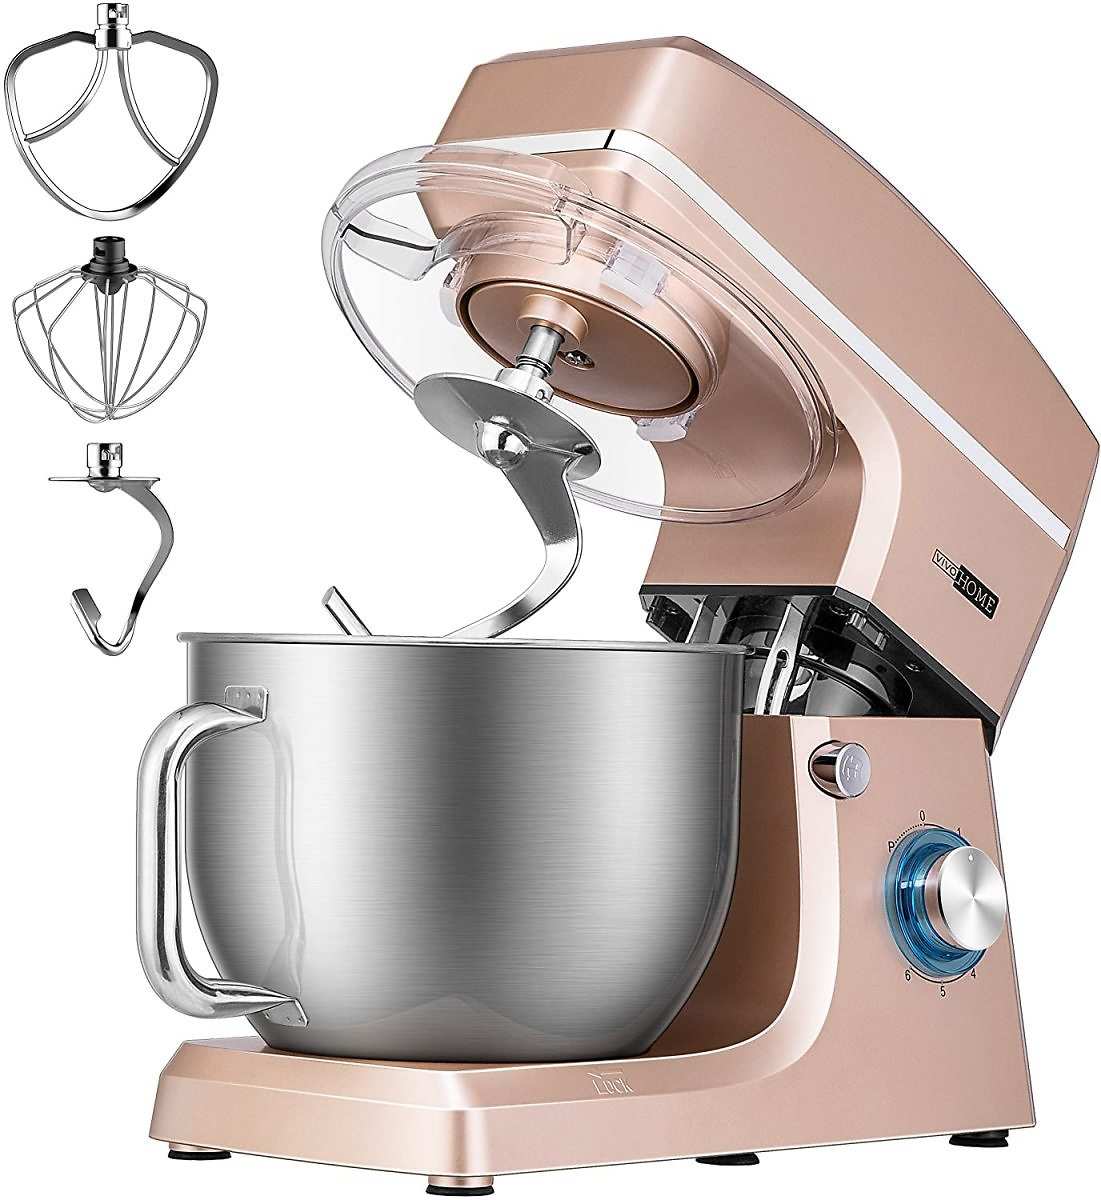 VIVOHOME 7.5 Quart Stand Mixer, 660W 6-Speed Tilt-Head Kitchen Electric Food Mixer with Beater, Dough Hook and Wire Whip, ETL Li